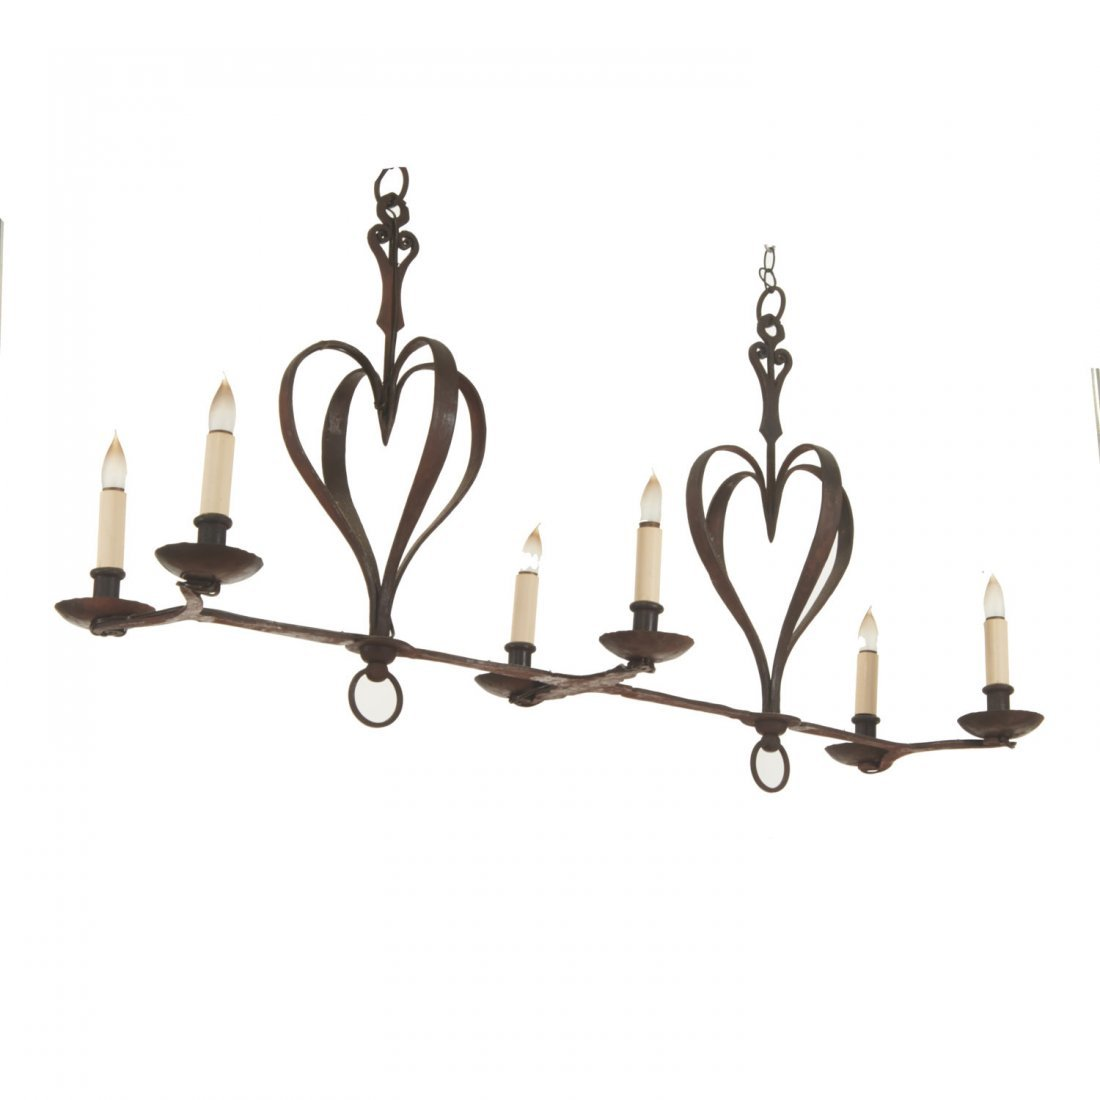 French Provincial style wrought iron chandelier - 5